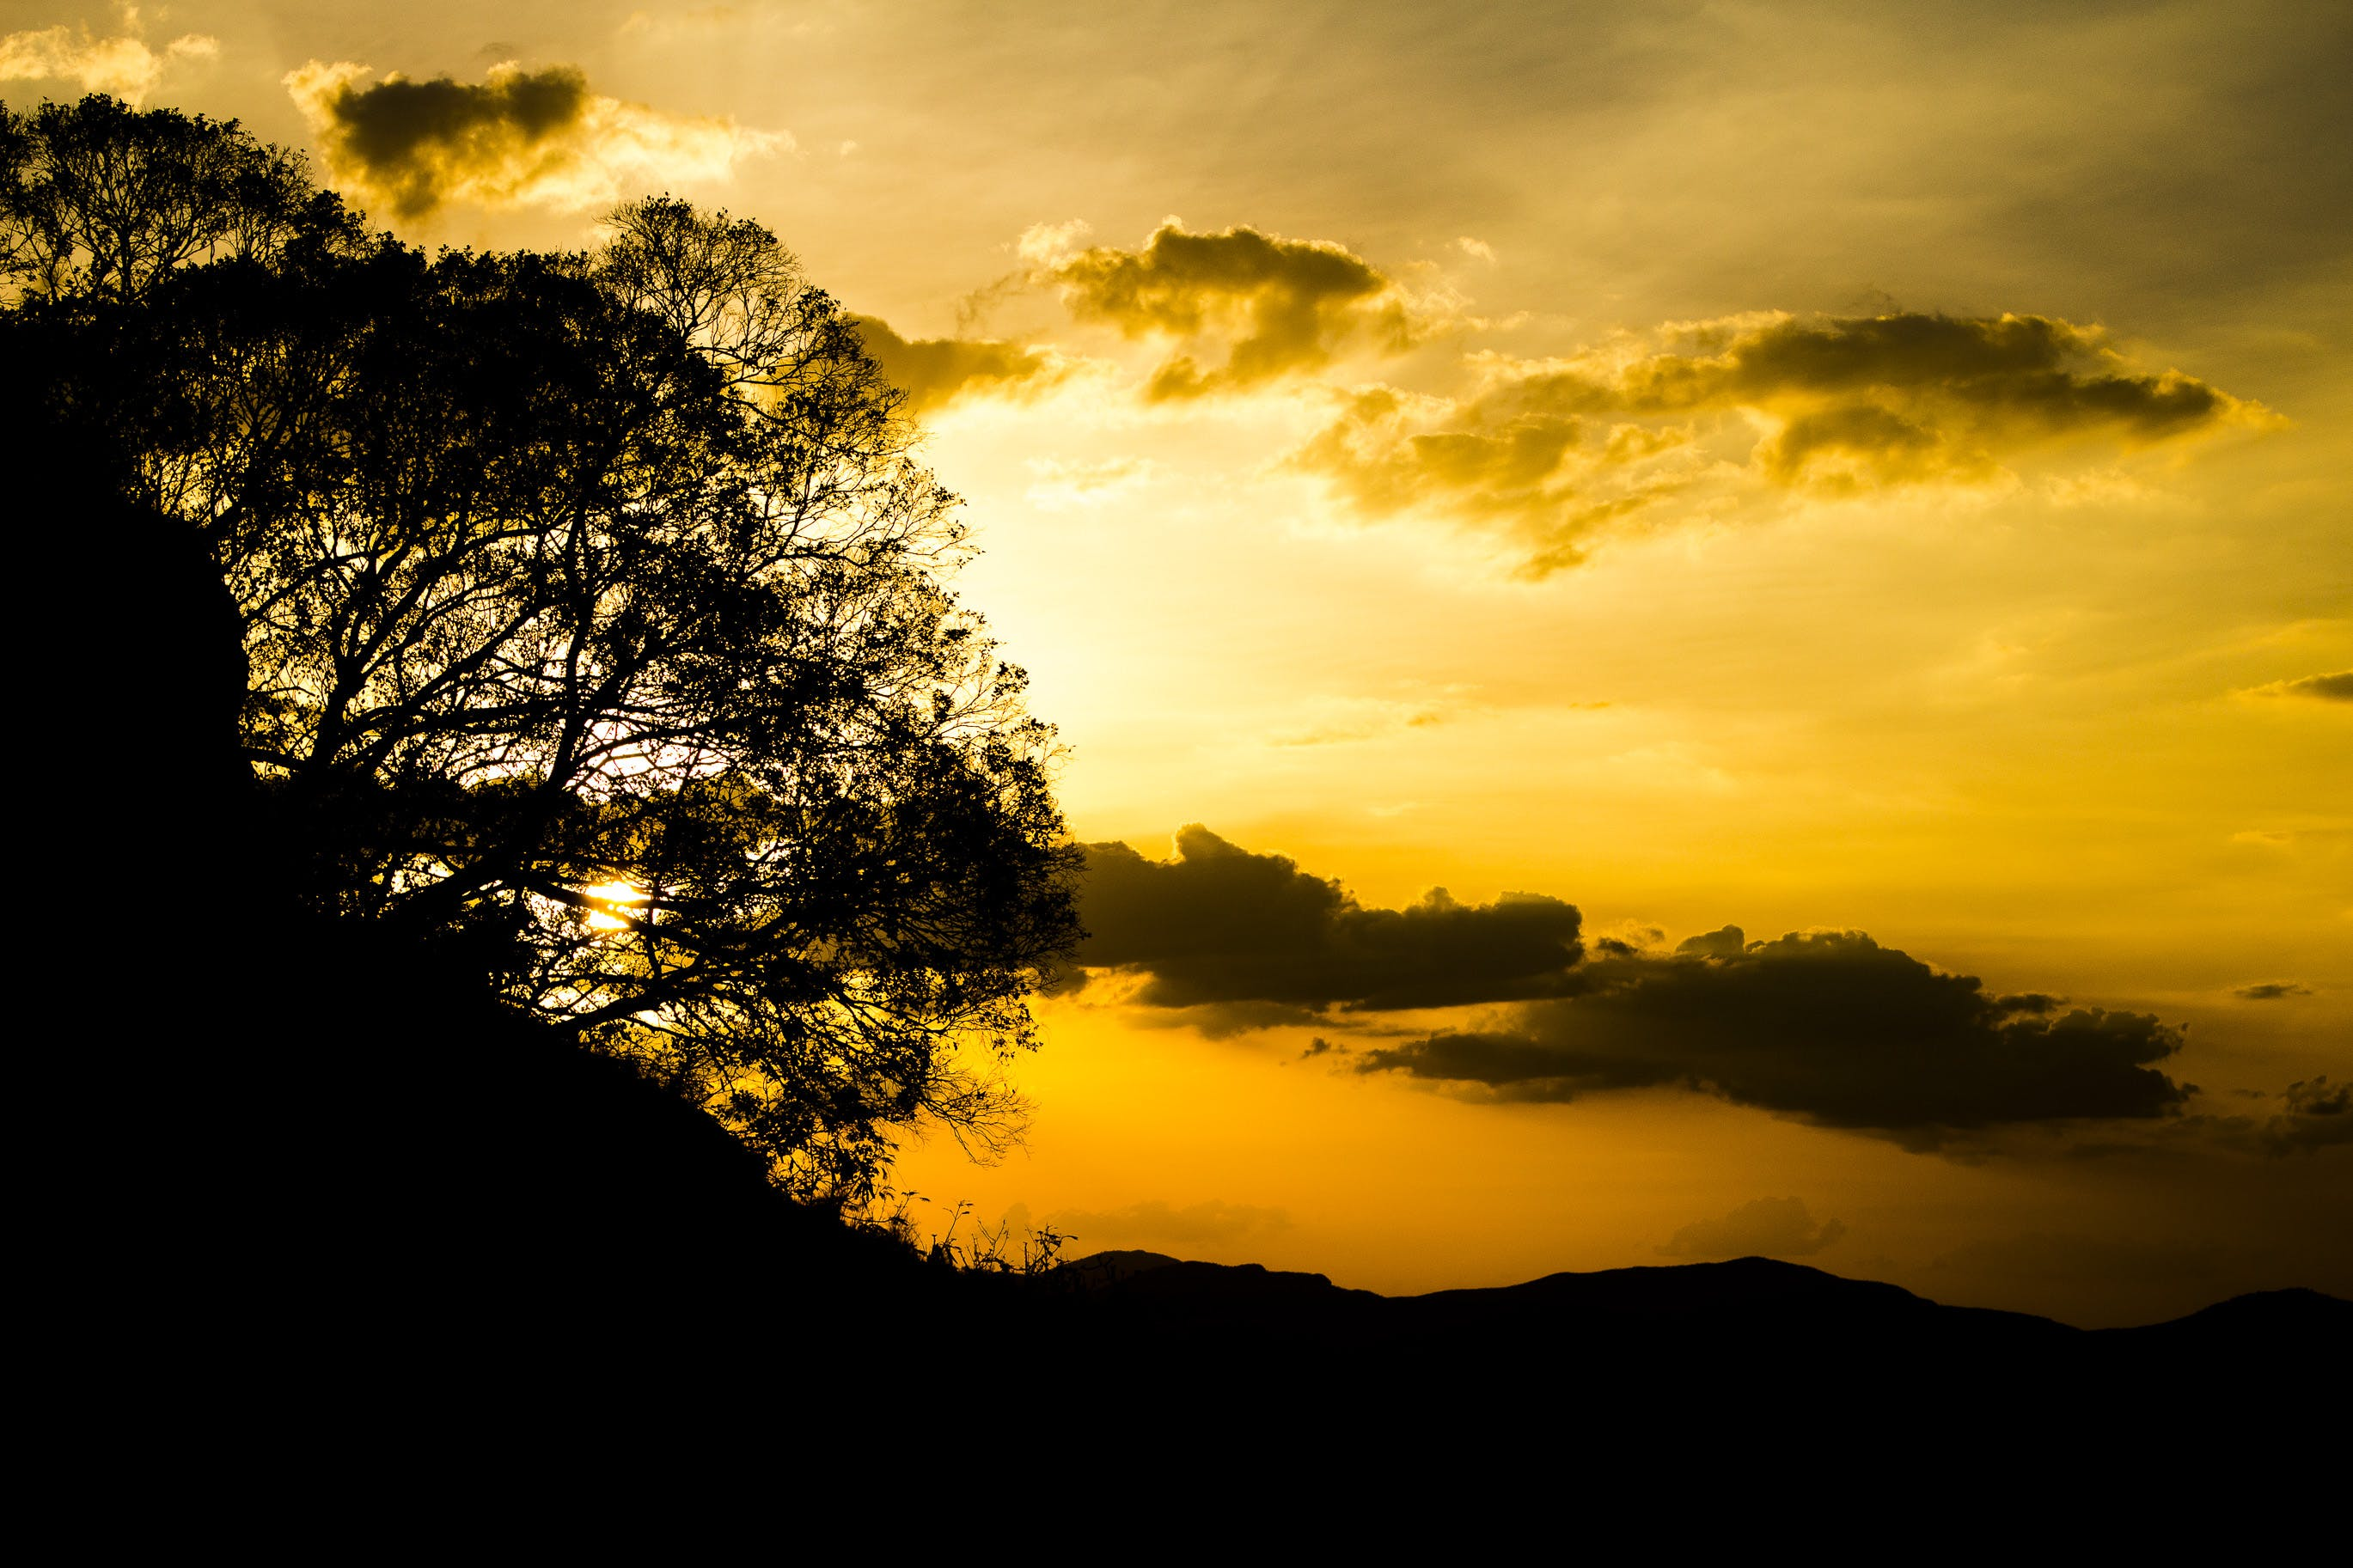 Silhouette of Tree Under Orange Sunset